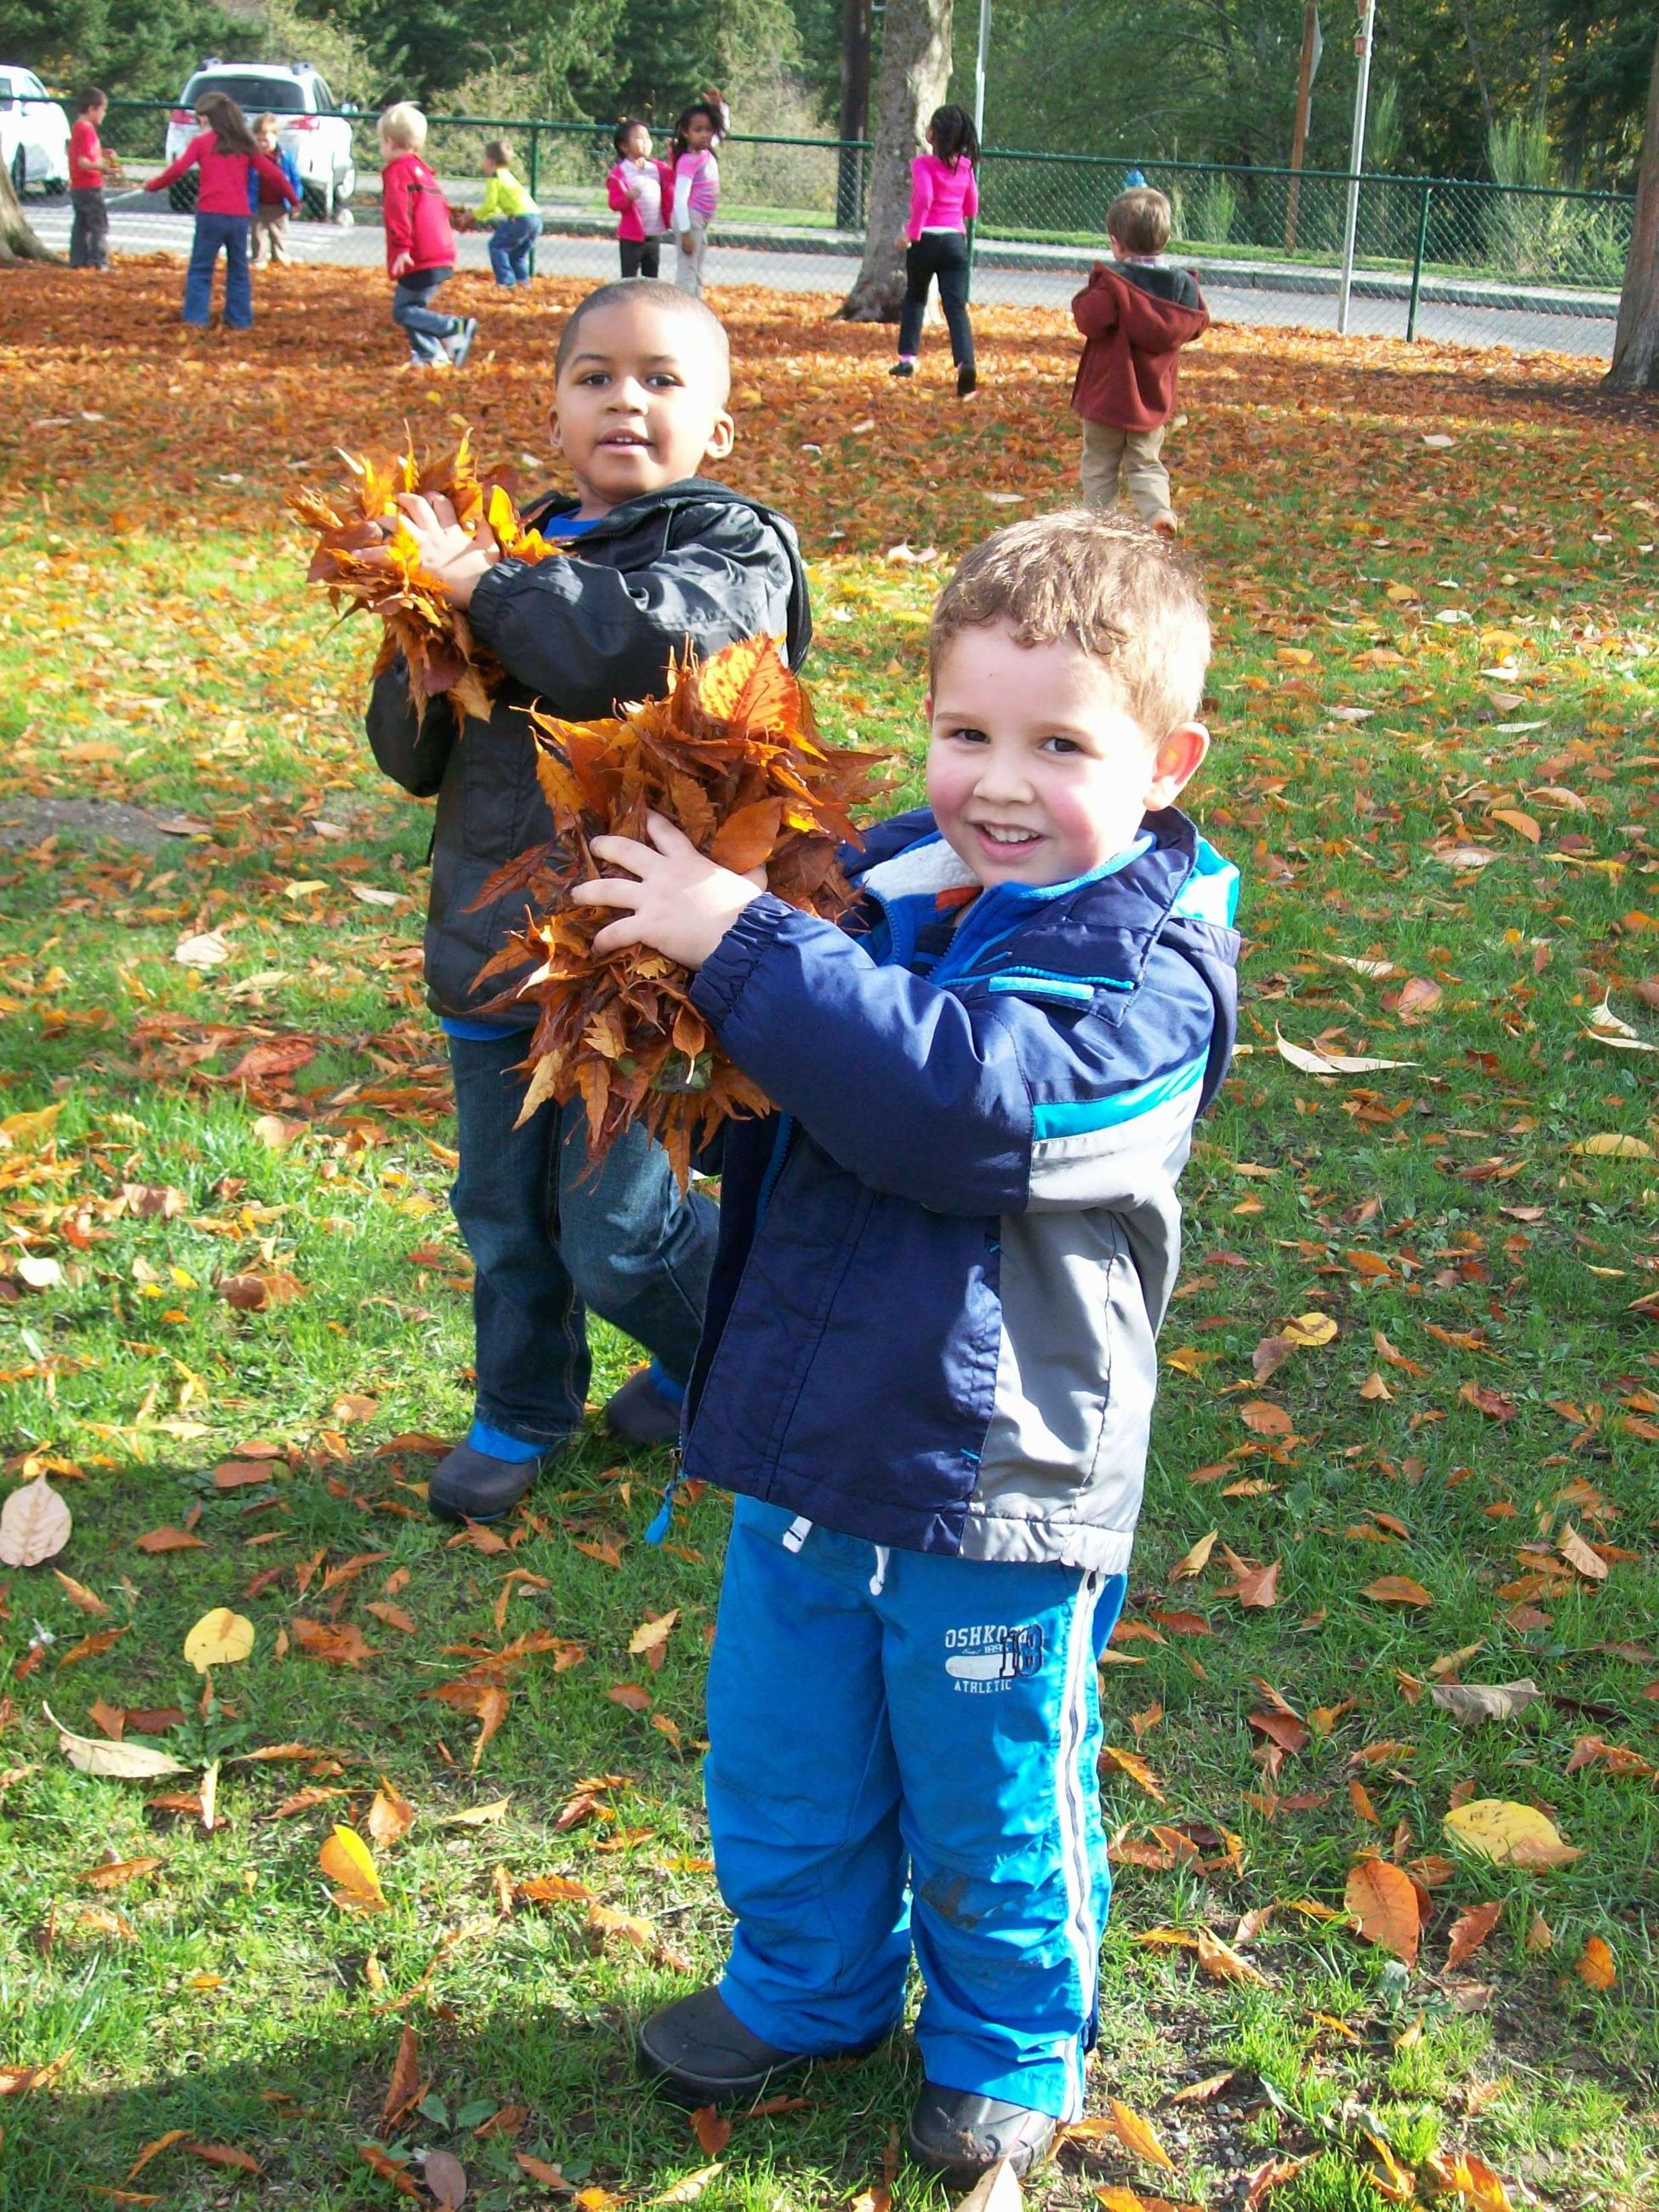 Preschool Aged Child Playing in Fall Leaves